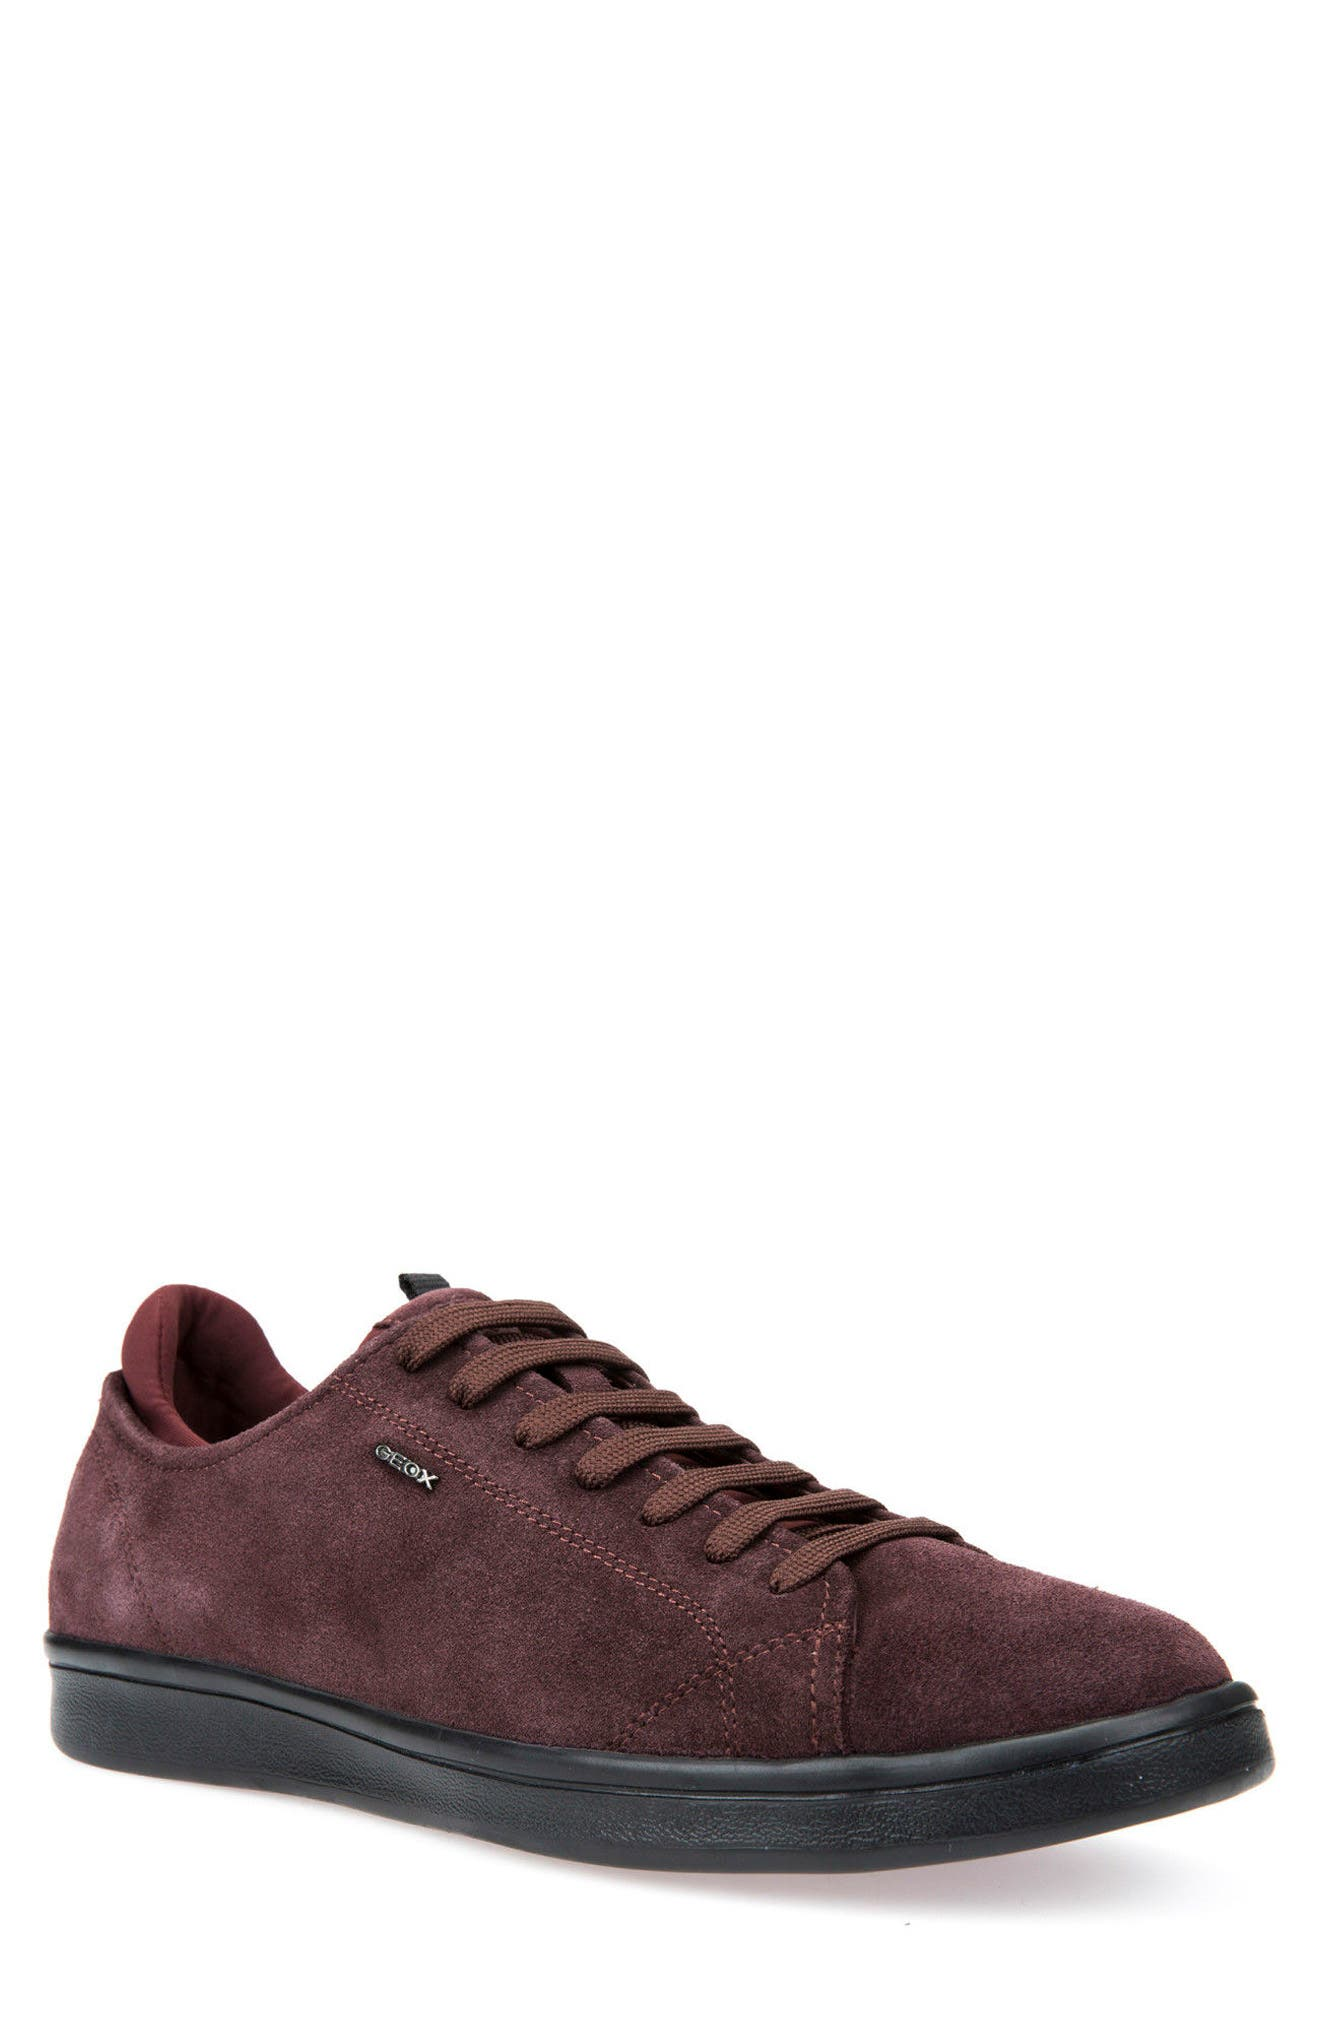 Warrens 8 Low-Top Sneaker,                         Main,                         color, Bordeaux